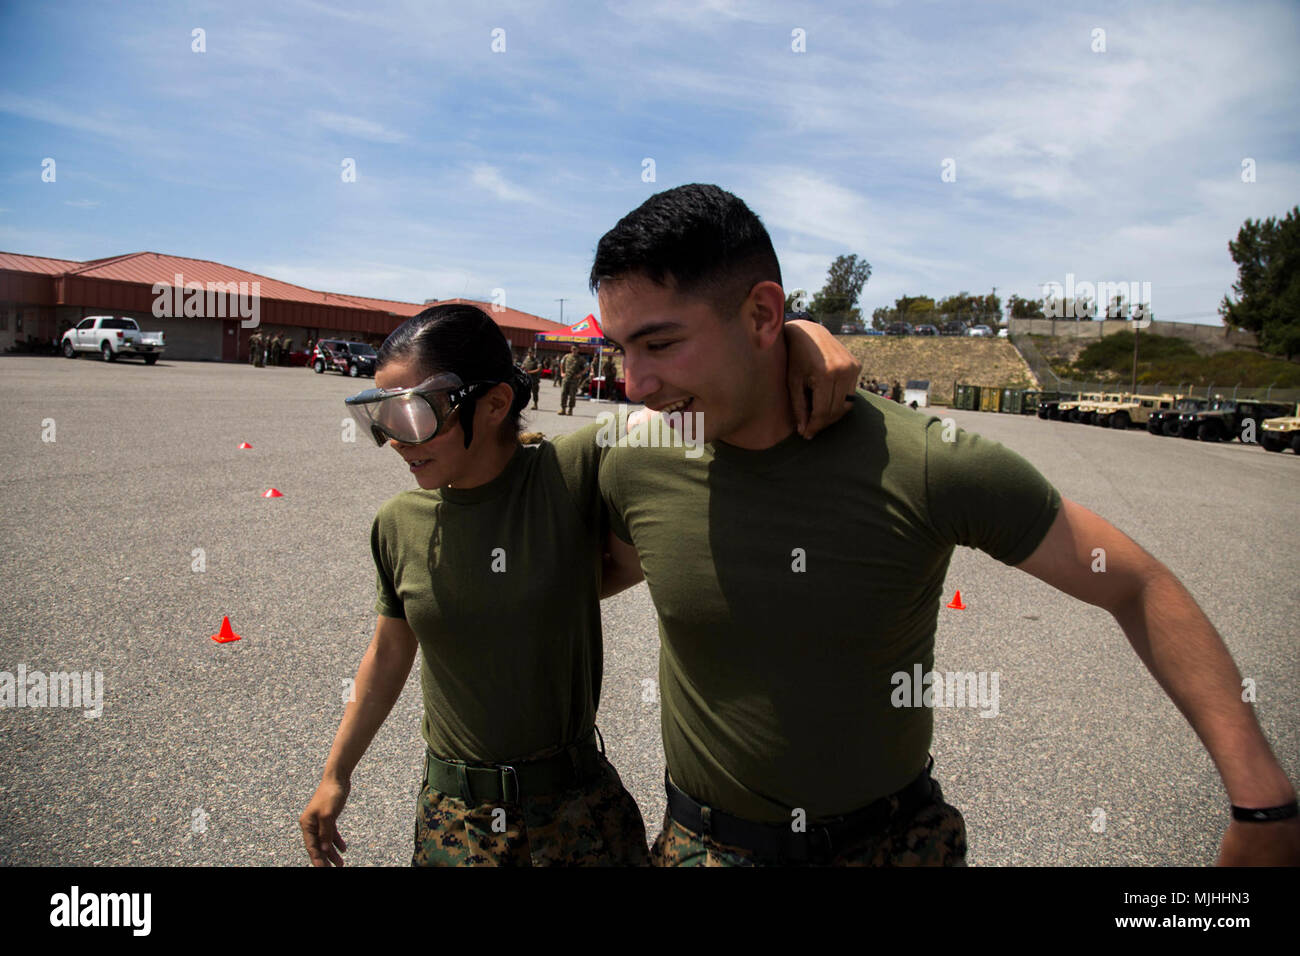 U.S. Marines Cpl. Vanessa, left, and Cpl. Edgar Hernandez, right, both motor transportation operators with Transportation Support Company, Combat Logistics Battalion 1, Combat Logistics Regiment 1, 1st Marine Logistics Group navigating an obstacle course while wearing goggles that simulate the effects of alcohol during the Alcohol Free Weekend event at Camp Pendleton, Calif., April 6, 2018. This is an opportunity to raise awareness of alcohol use throughout CLR-1 and how alcohol may affect Marines, families and the Marine Corps as a whole. (U.S. Marine Corps Stock Photo